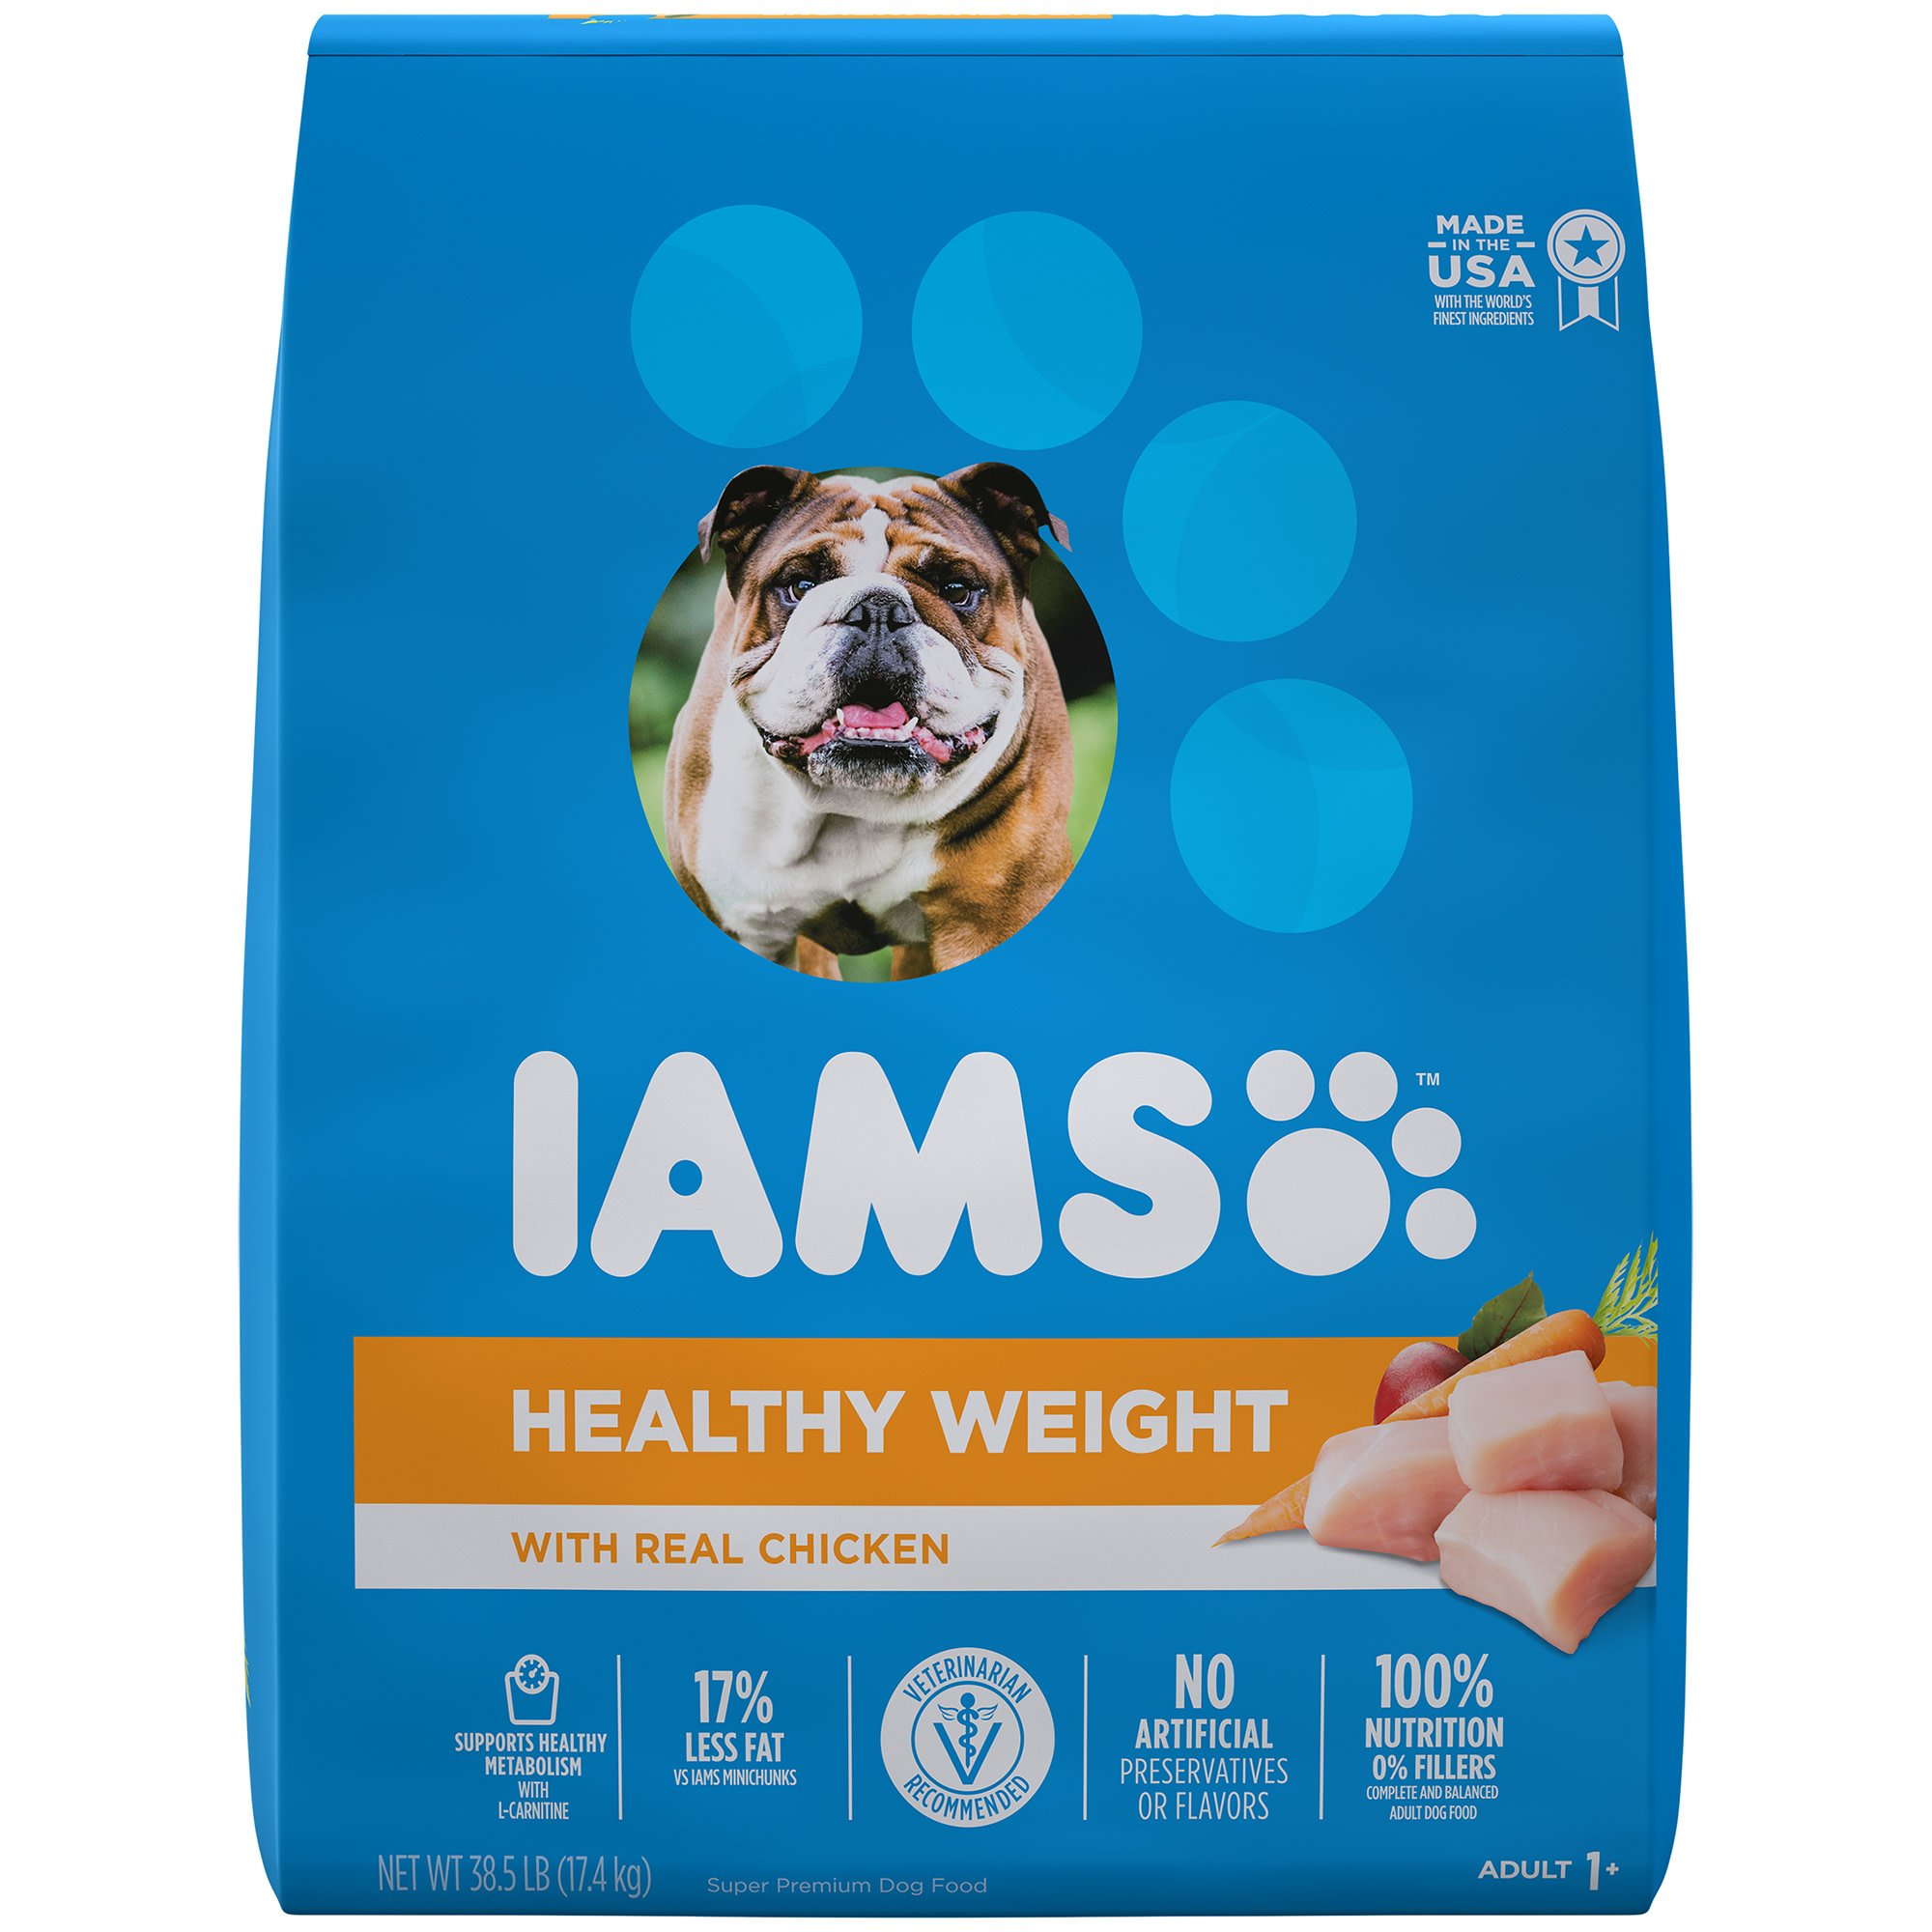 Iams ProActive Health Adult Healthy Weight Control with Real Chicken Dry Dog Food, 38.5 lbs.